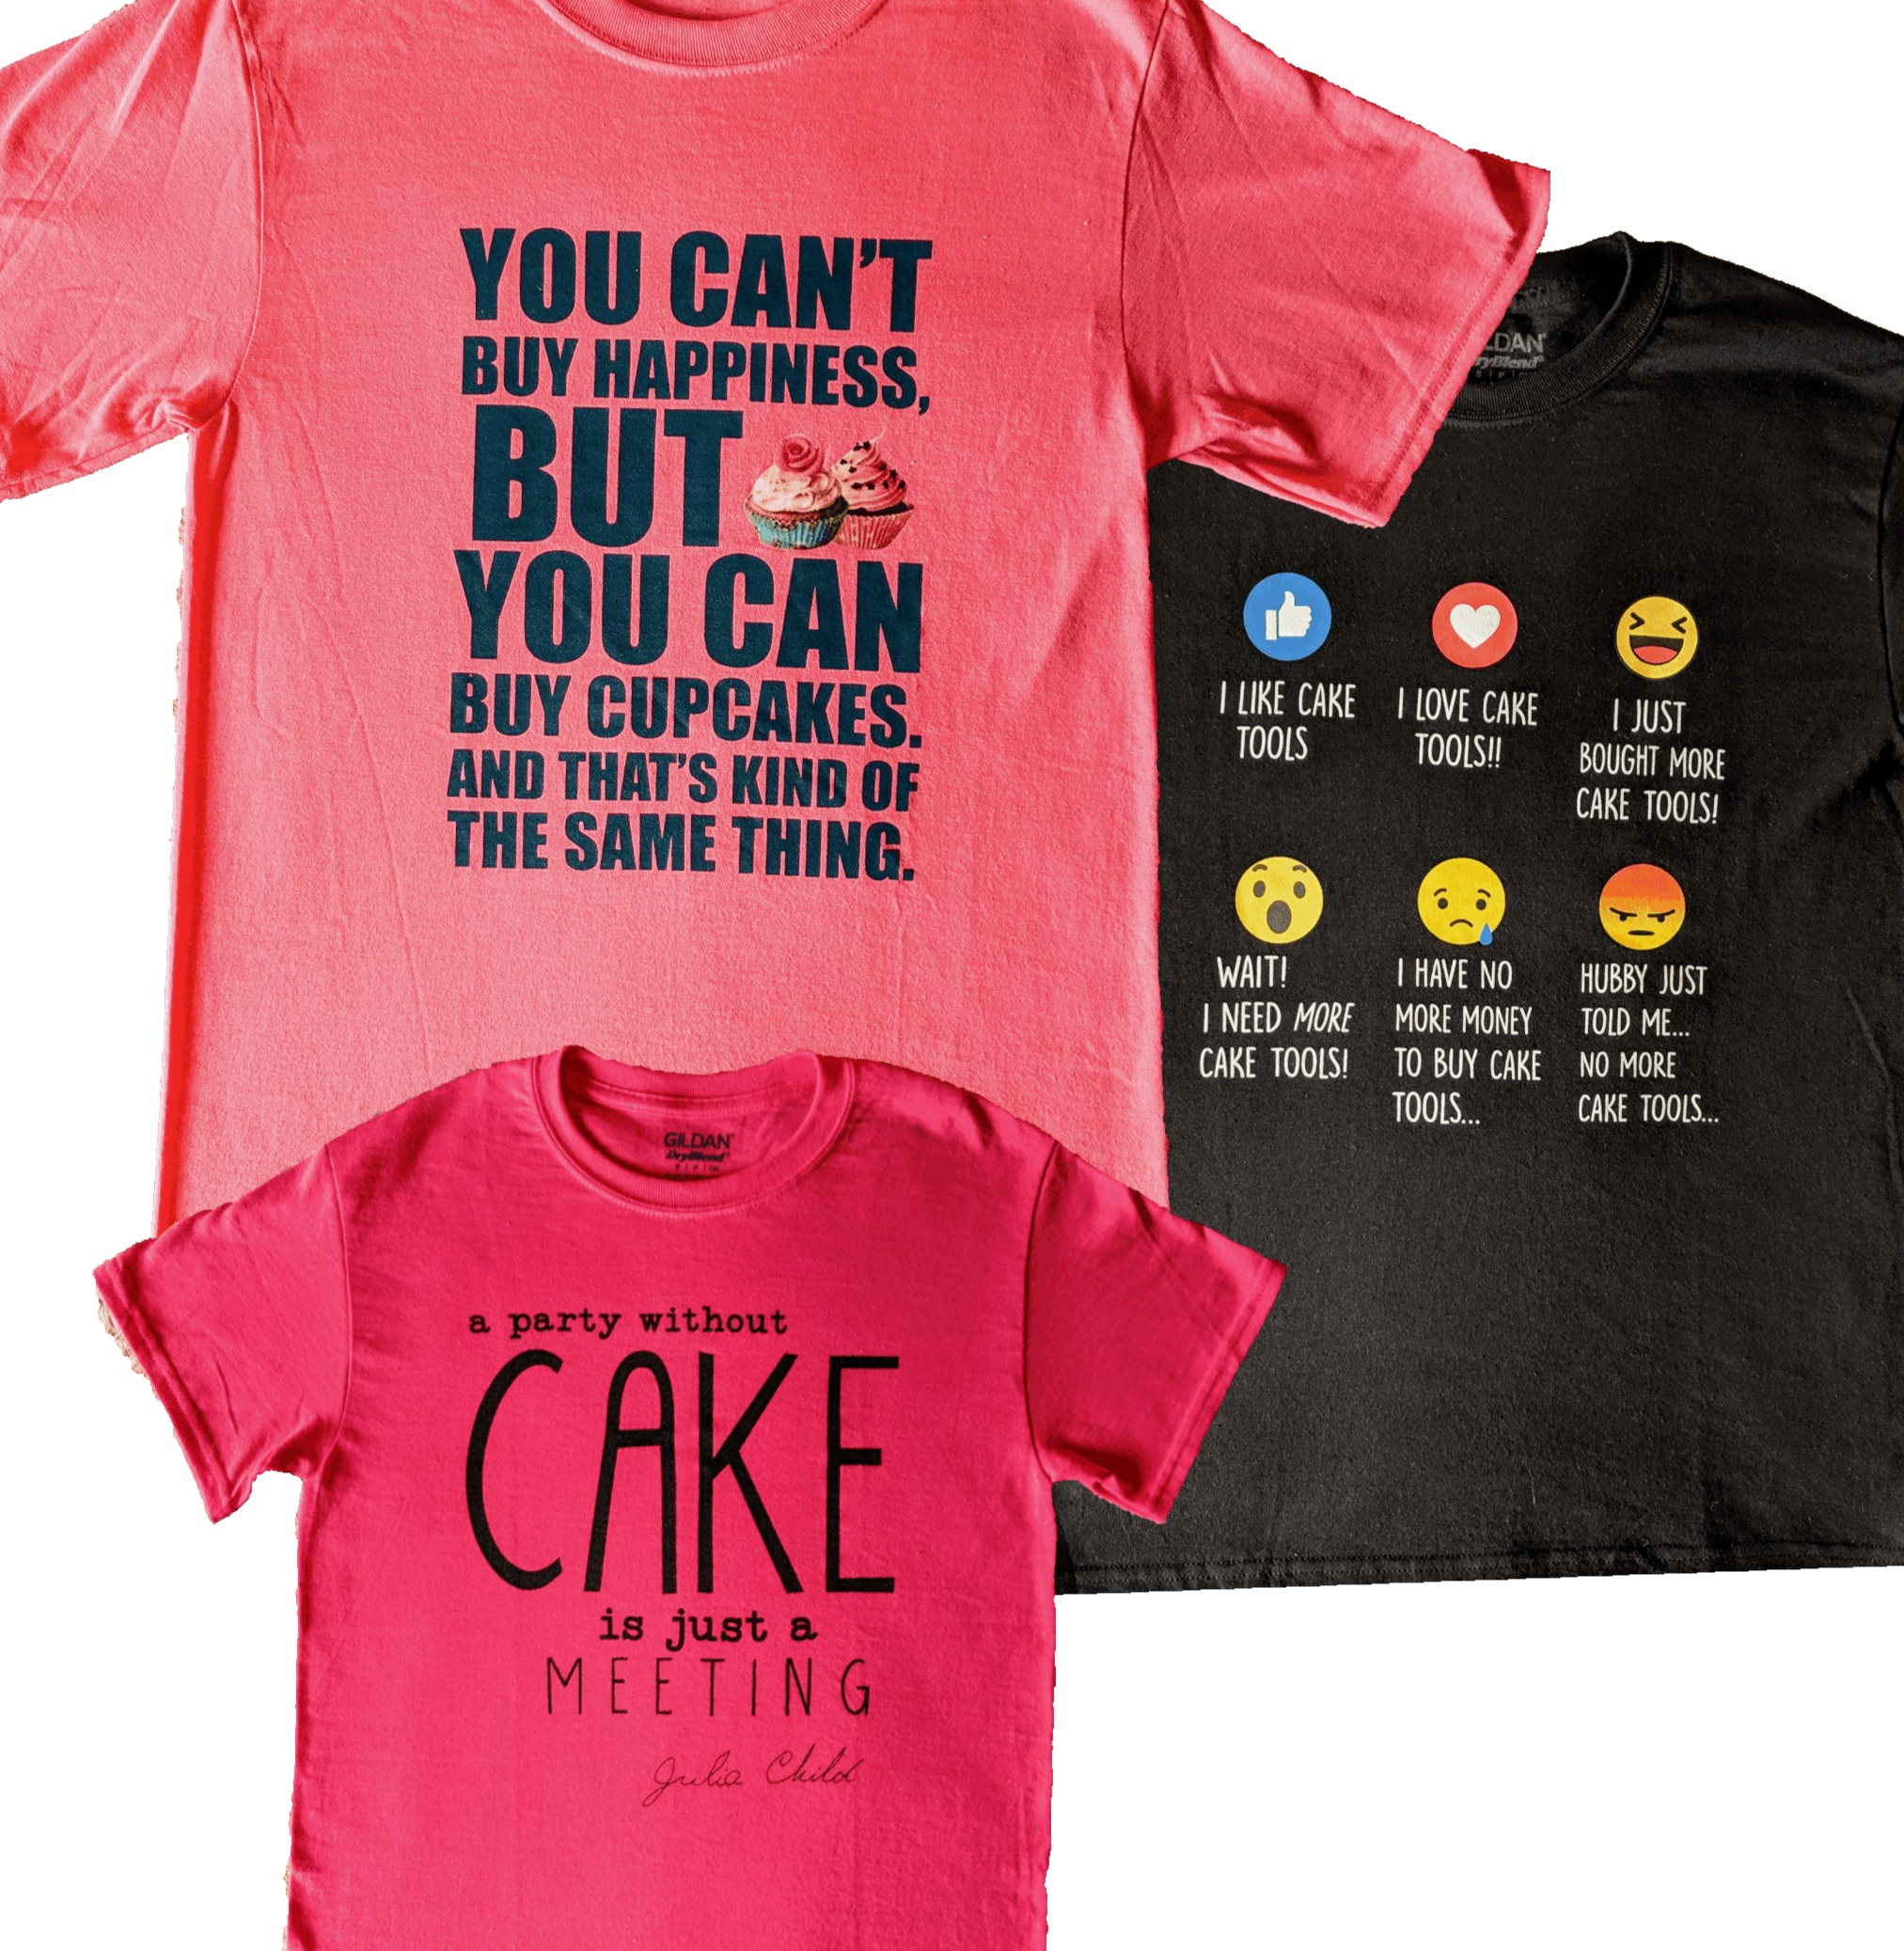 Cake Stuff t-shirts now on sale in-store. - Starting at $13.99